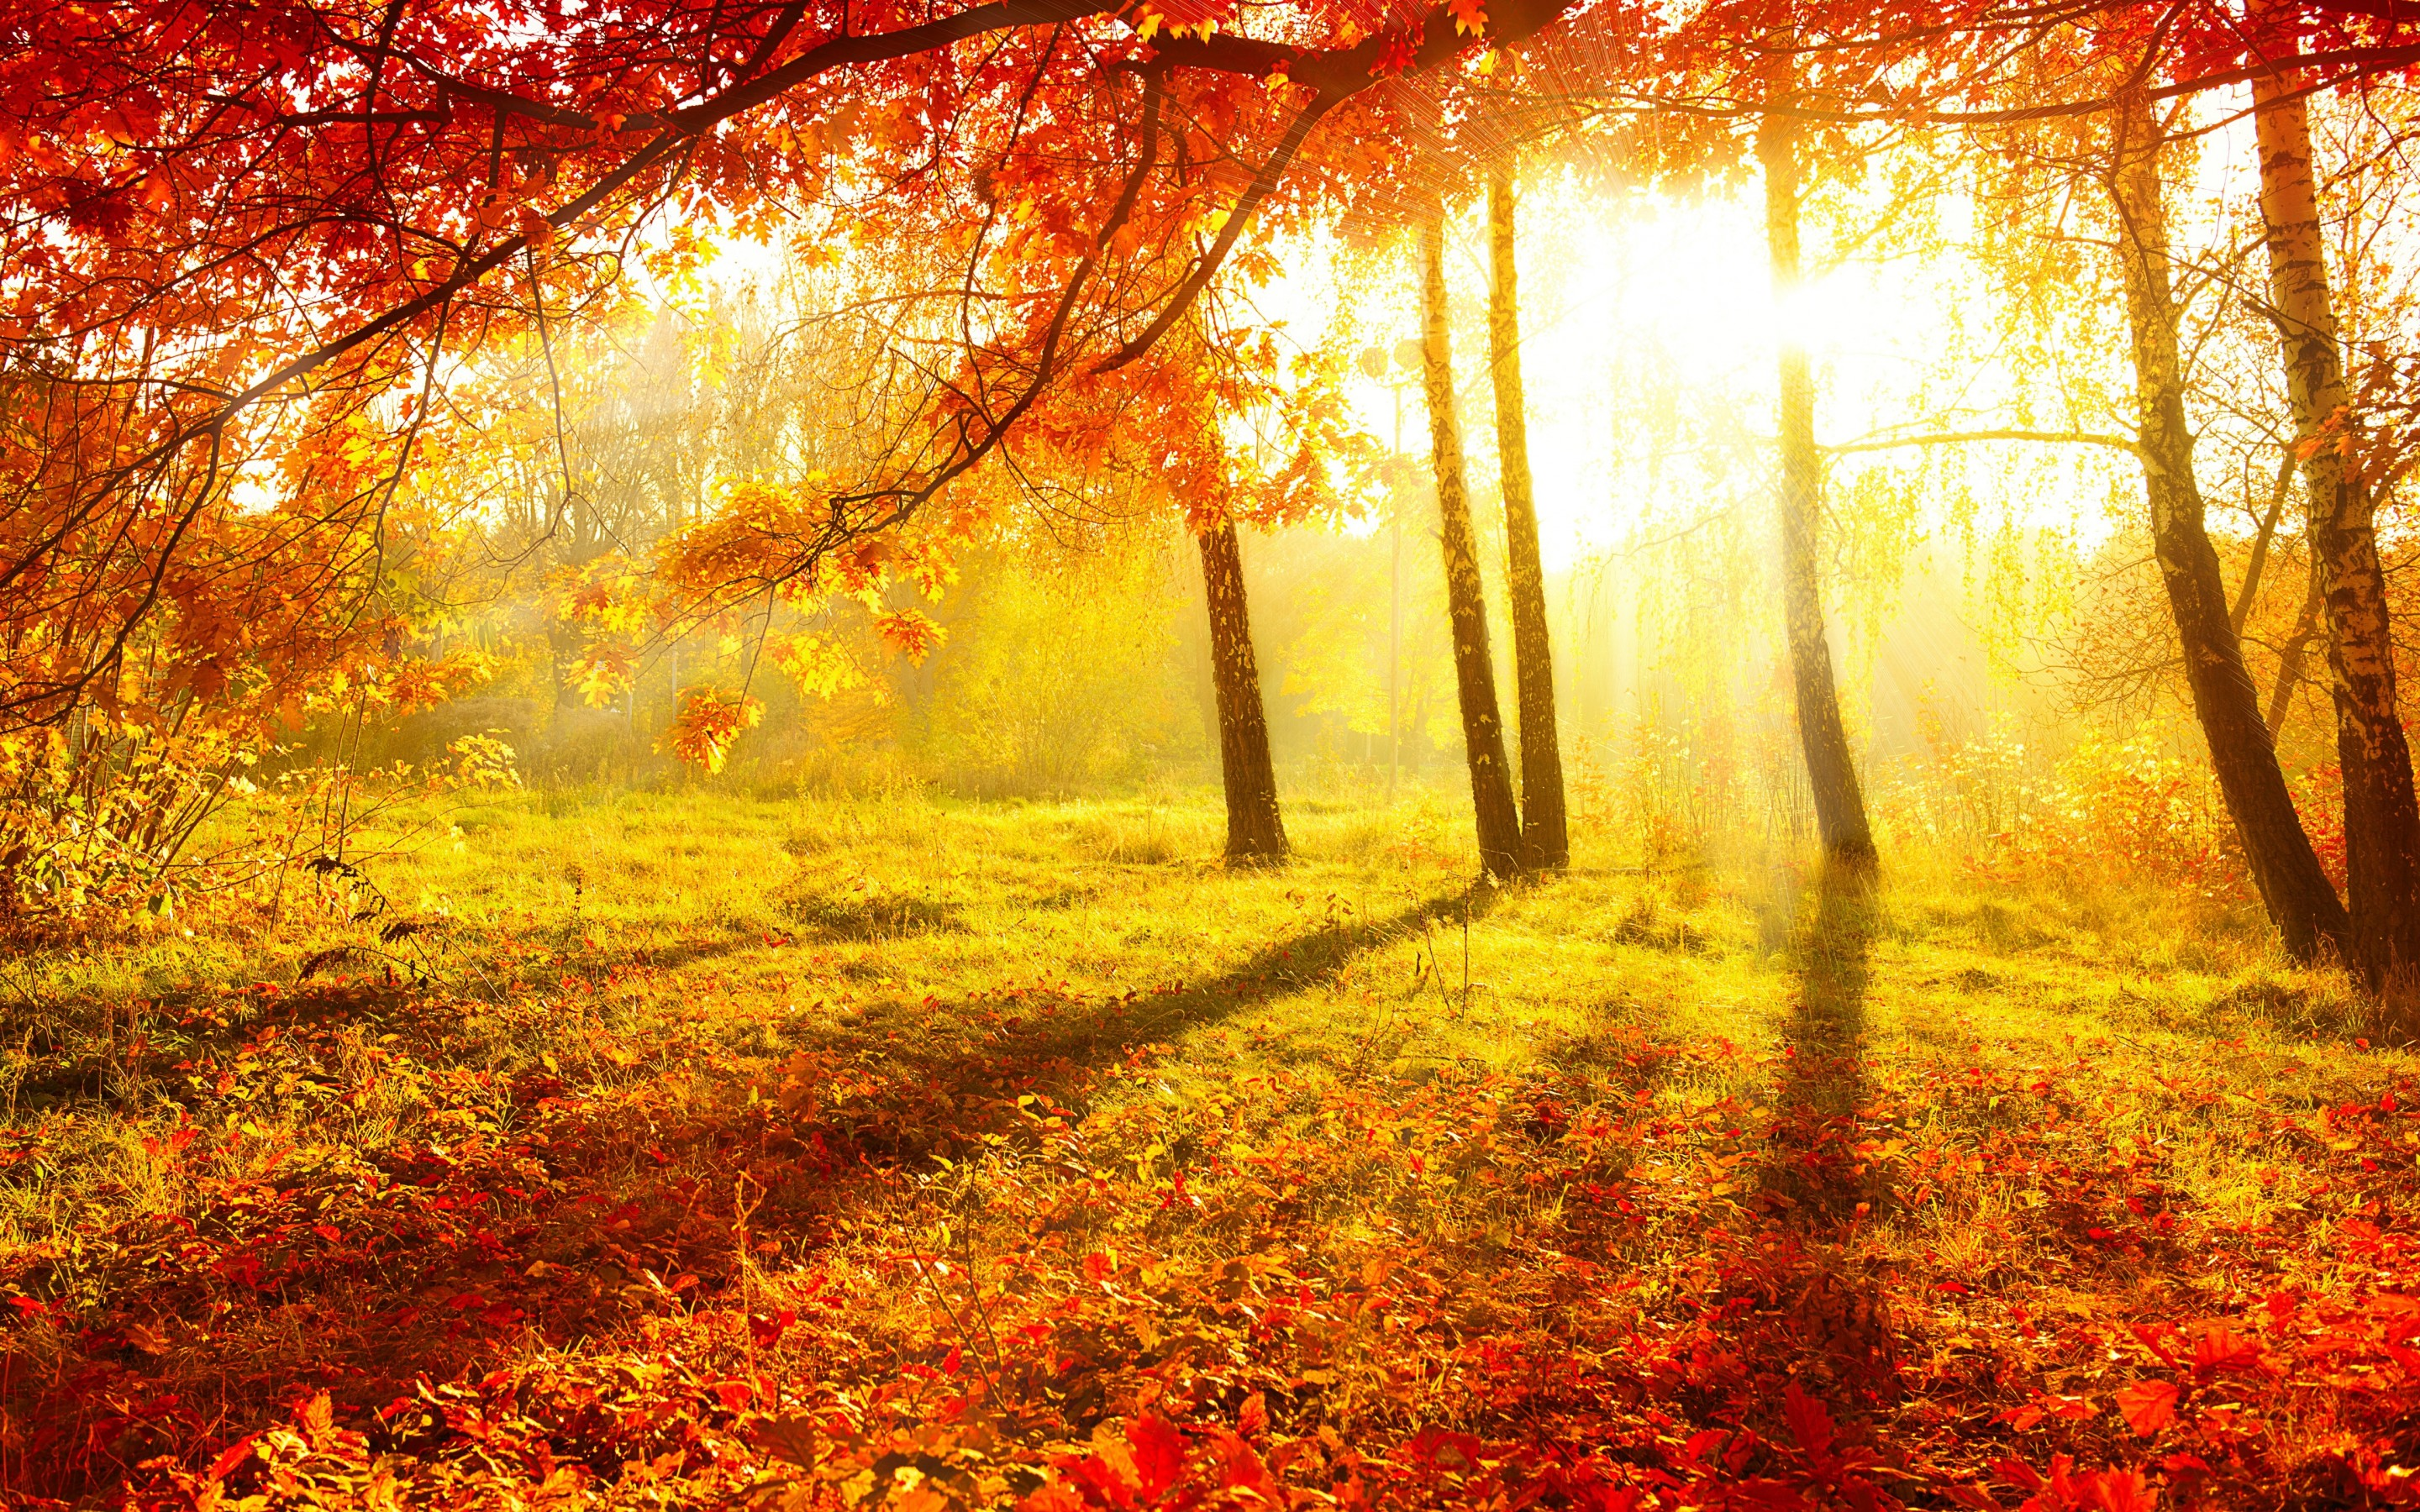 nature autumn forest trees leaves burgundy grass sun light wallpaper background